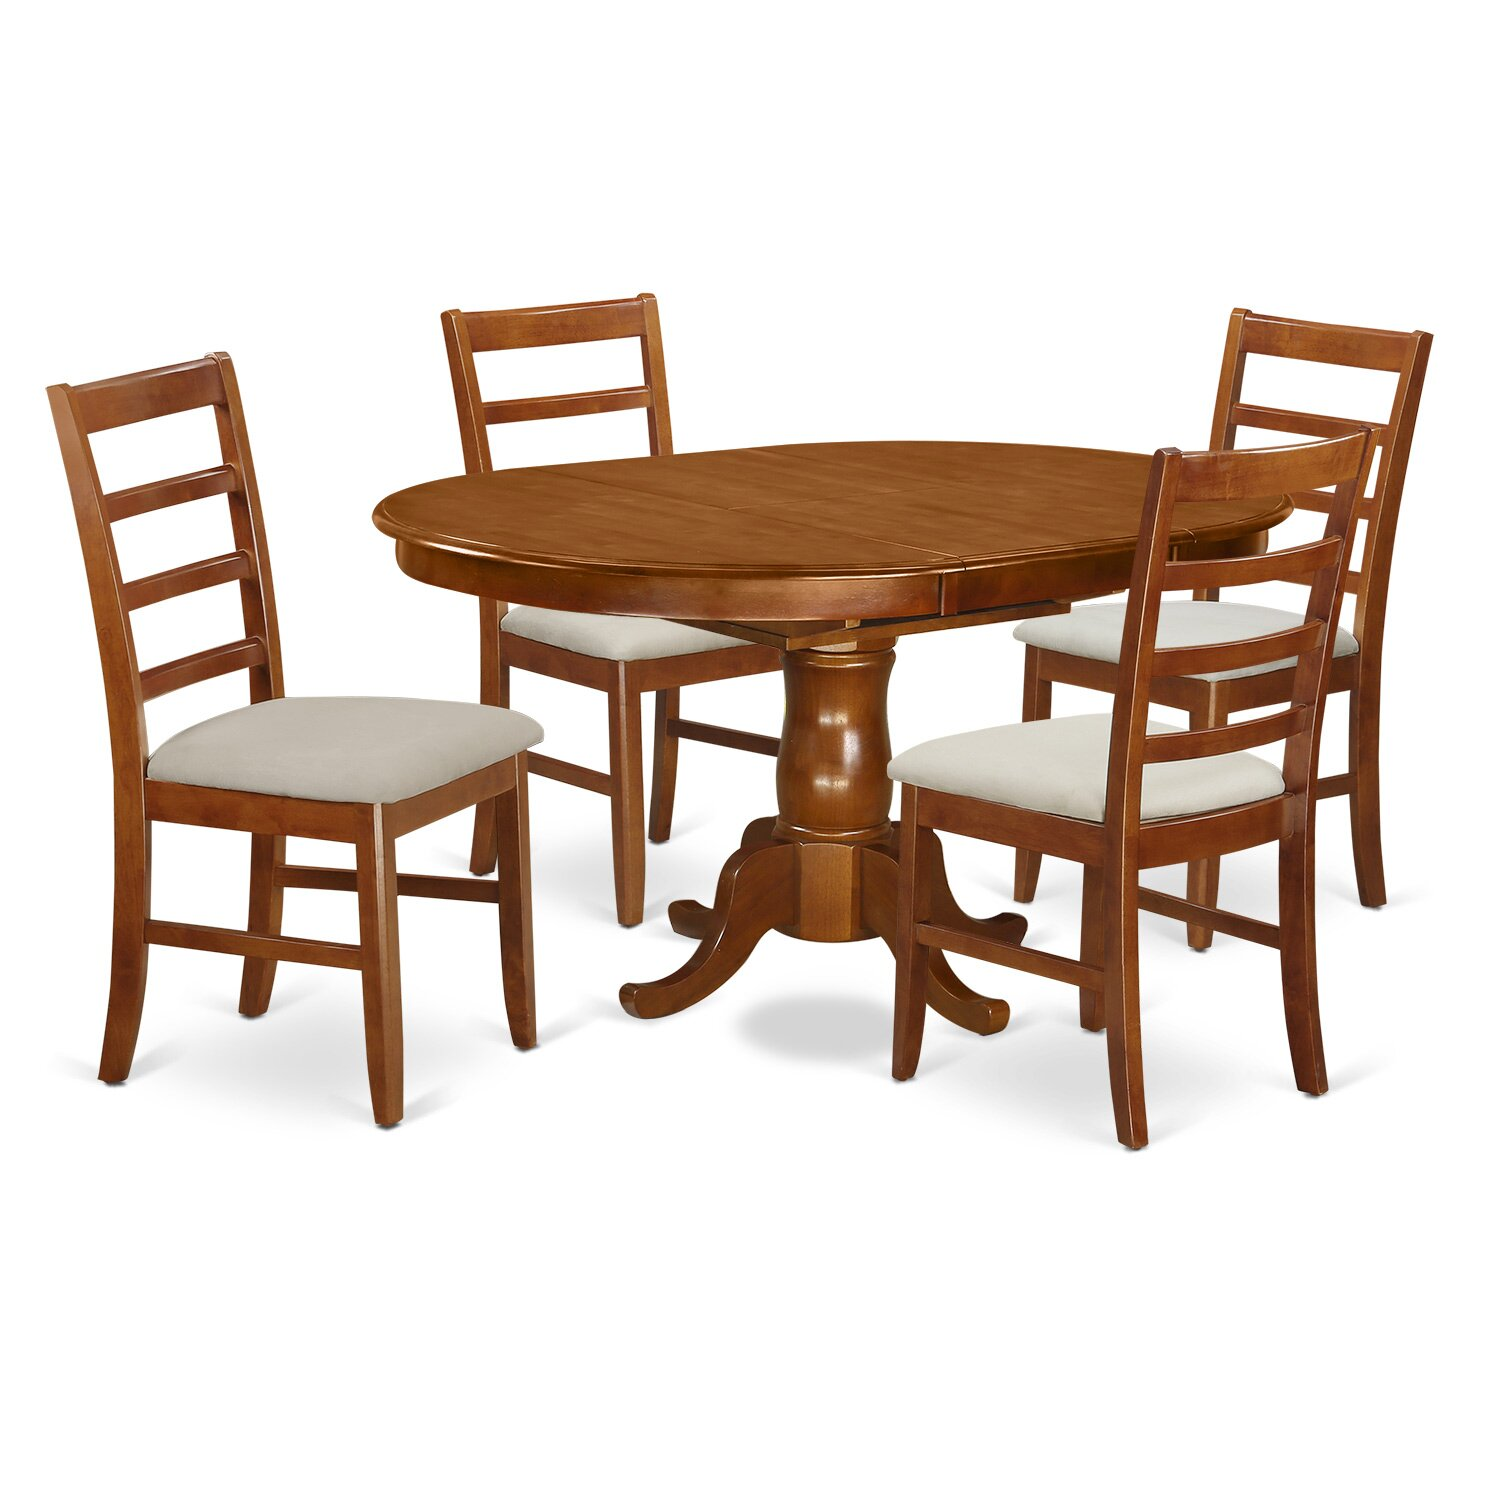 East west portland piece dining set wayfair